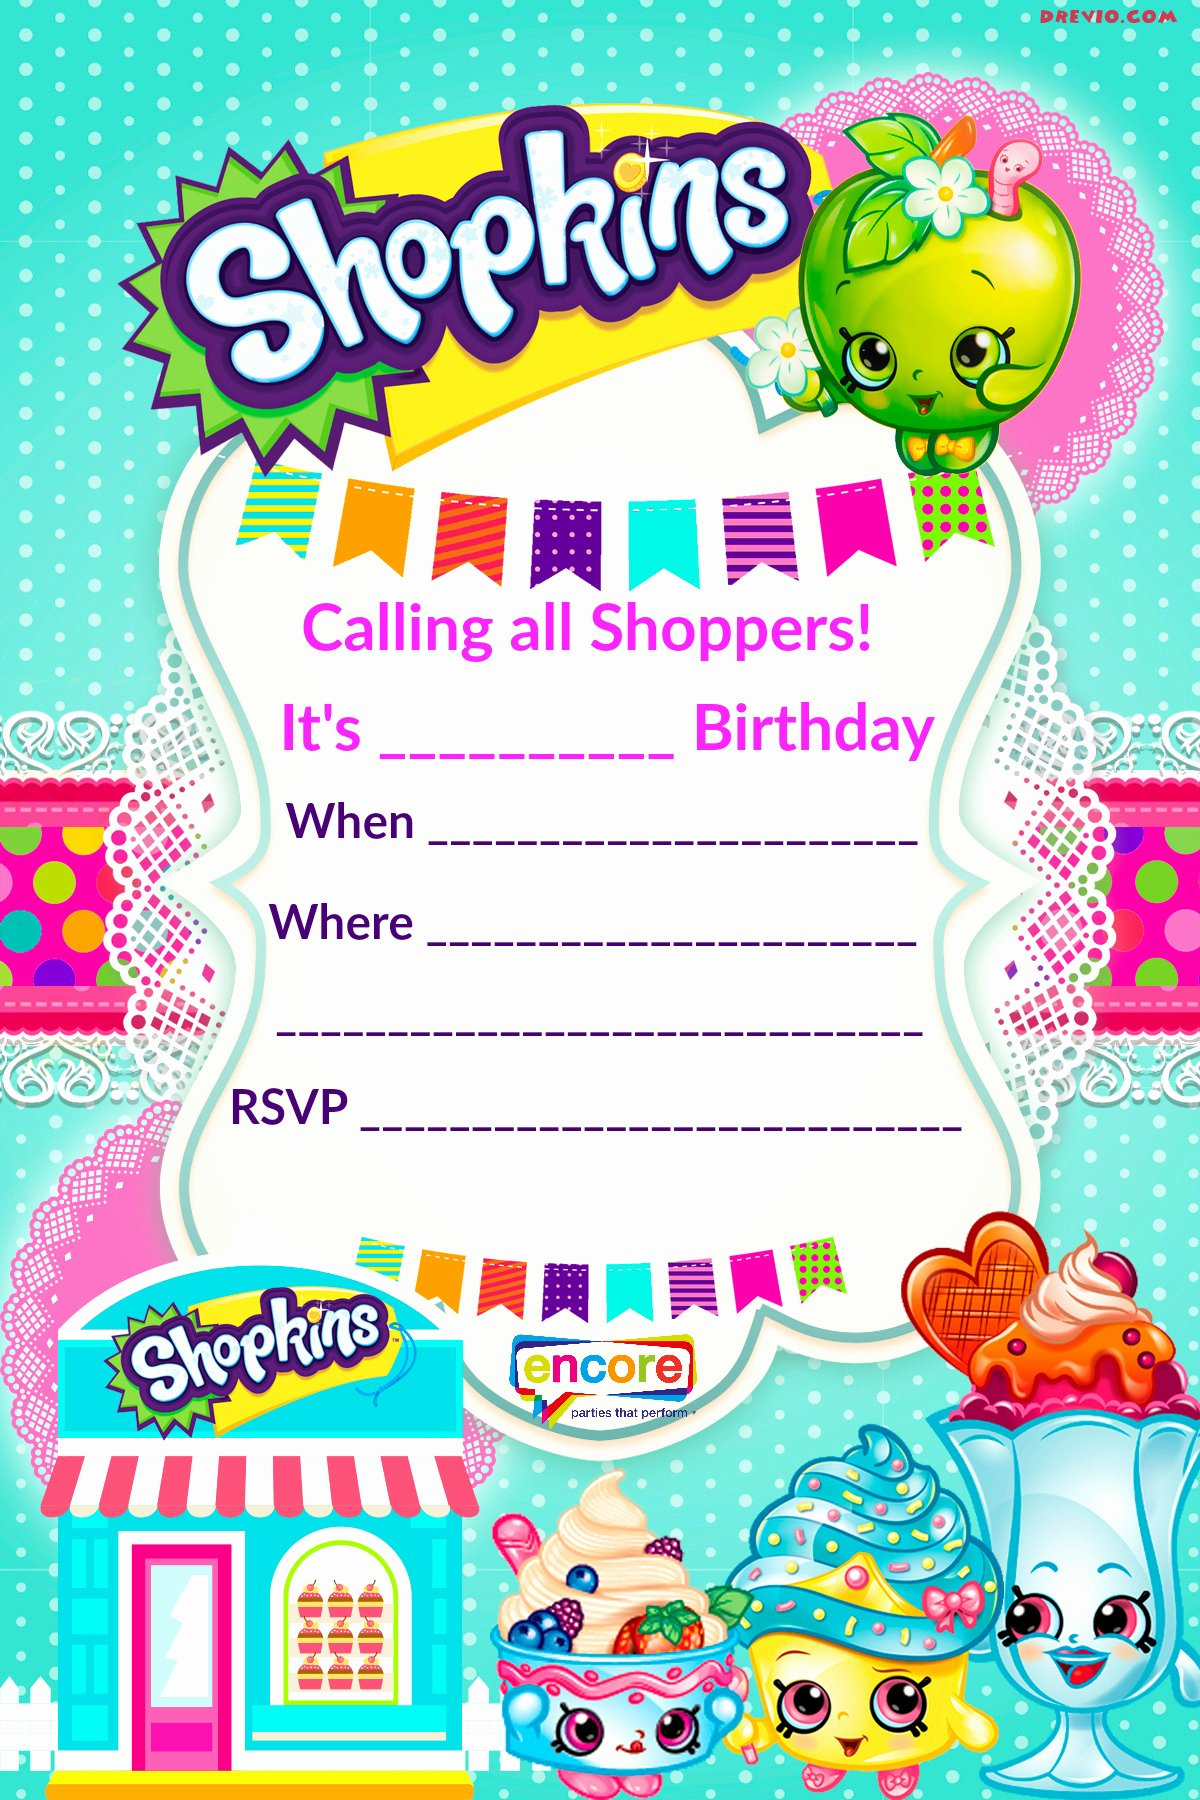 Free Printable Birthday Invitation Templates Luxury Updated – Free Printable Shopkins Birthday Invitation